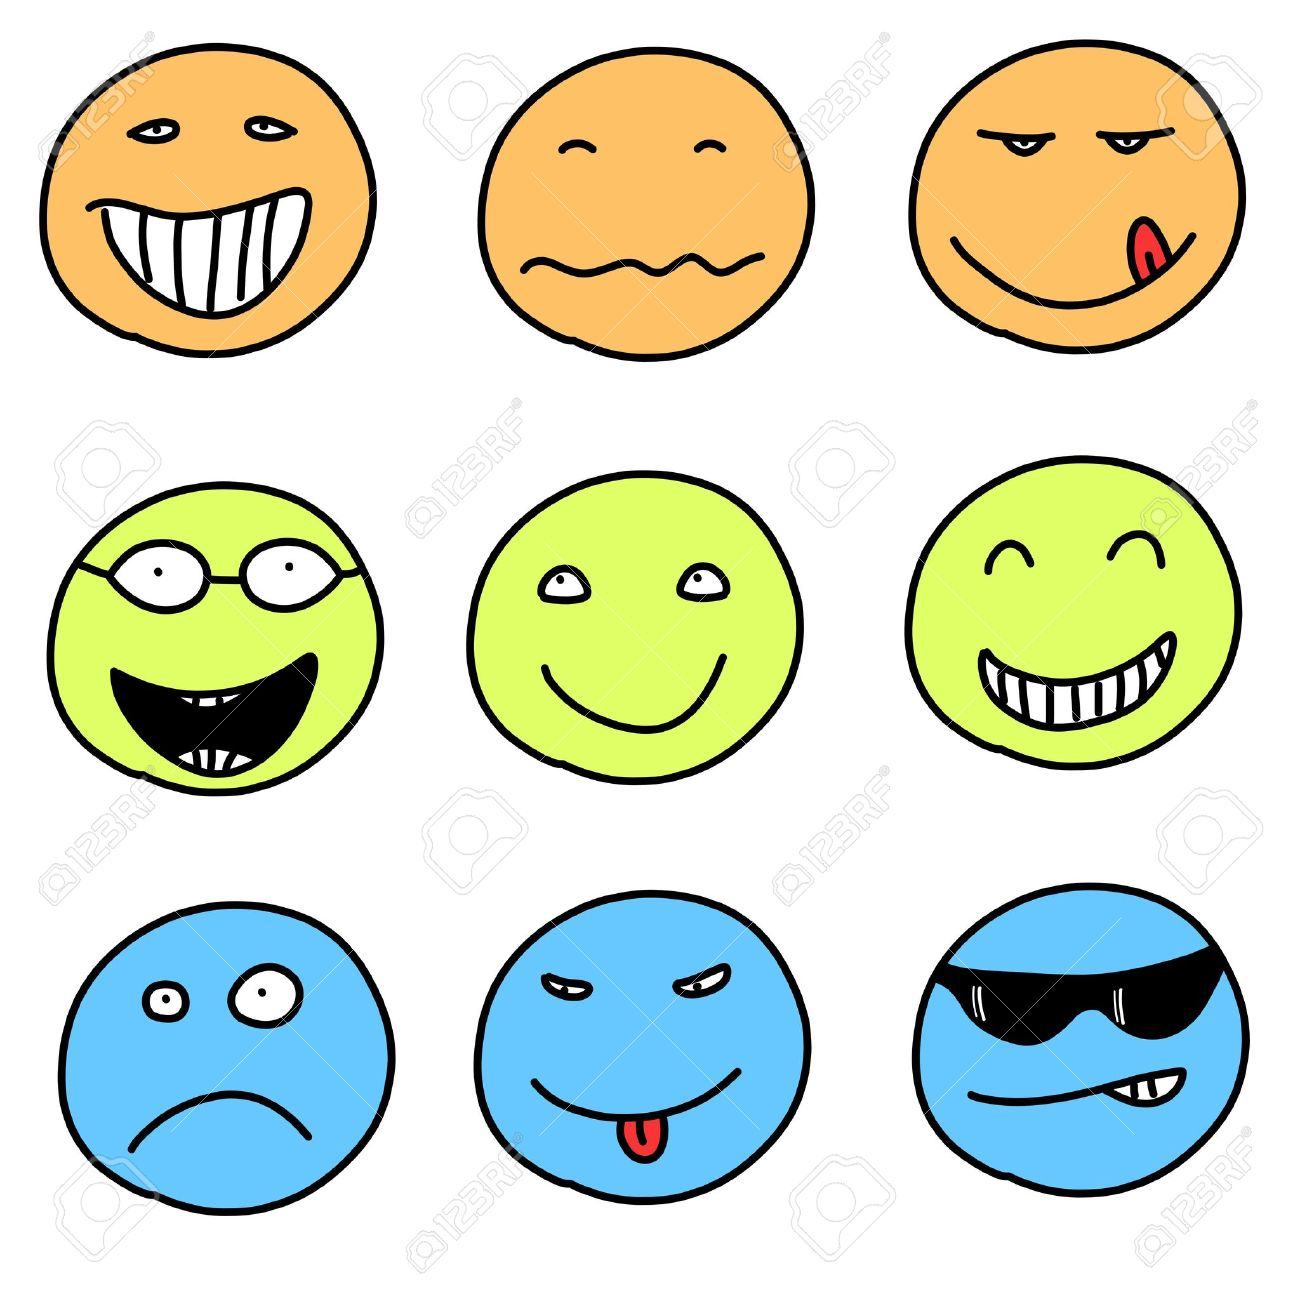 Smiley faces - doodle emoticon expressions. Happy, sad and confused balls. easily editable. Stock Vector - 15440088